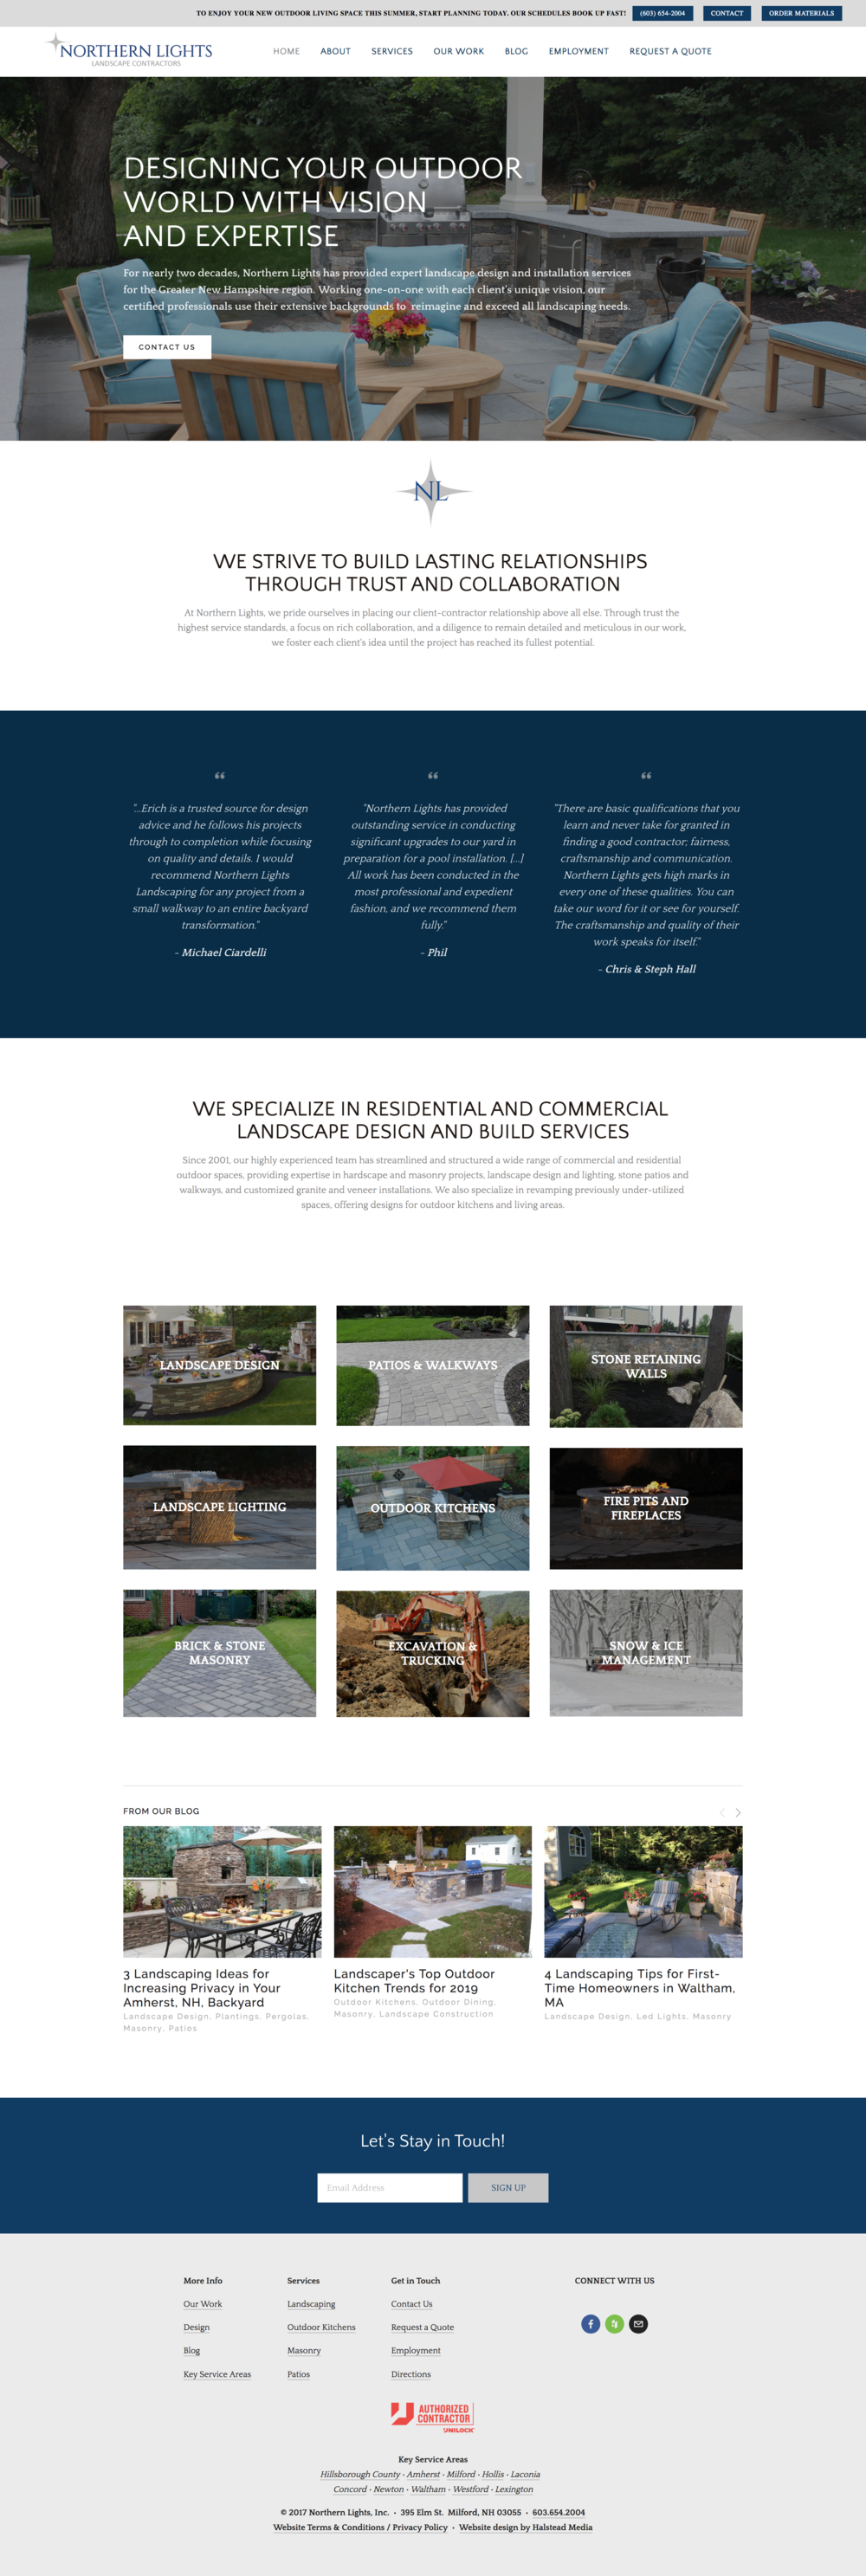 New Hampshire landscape company gets a new website